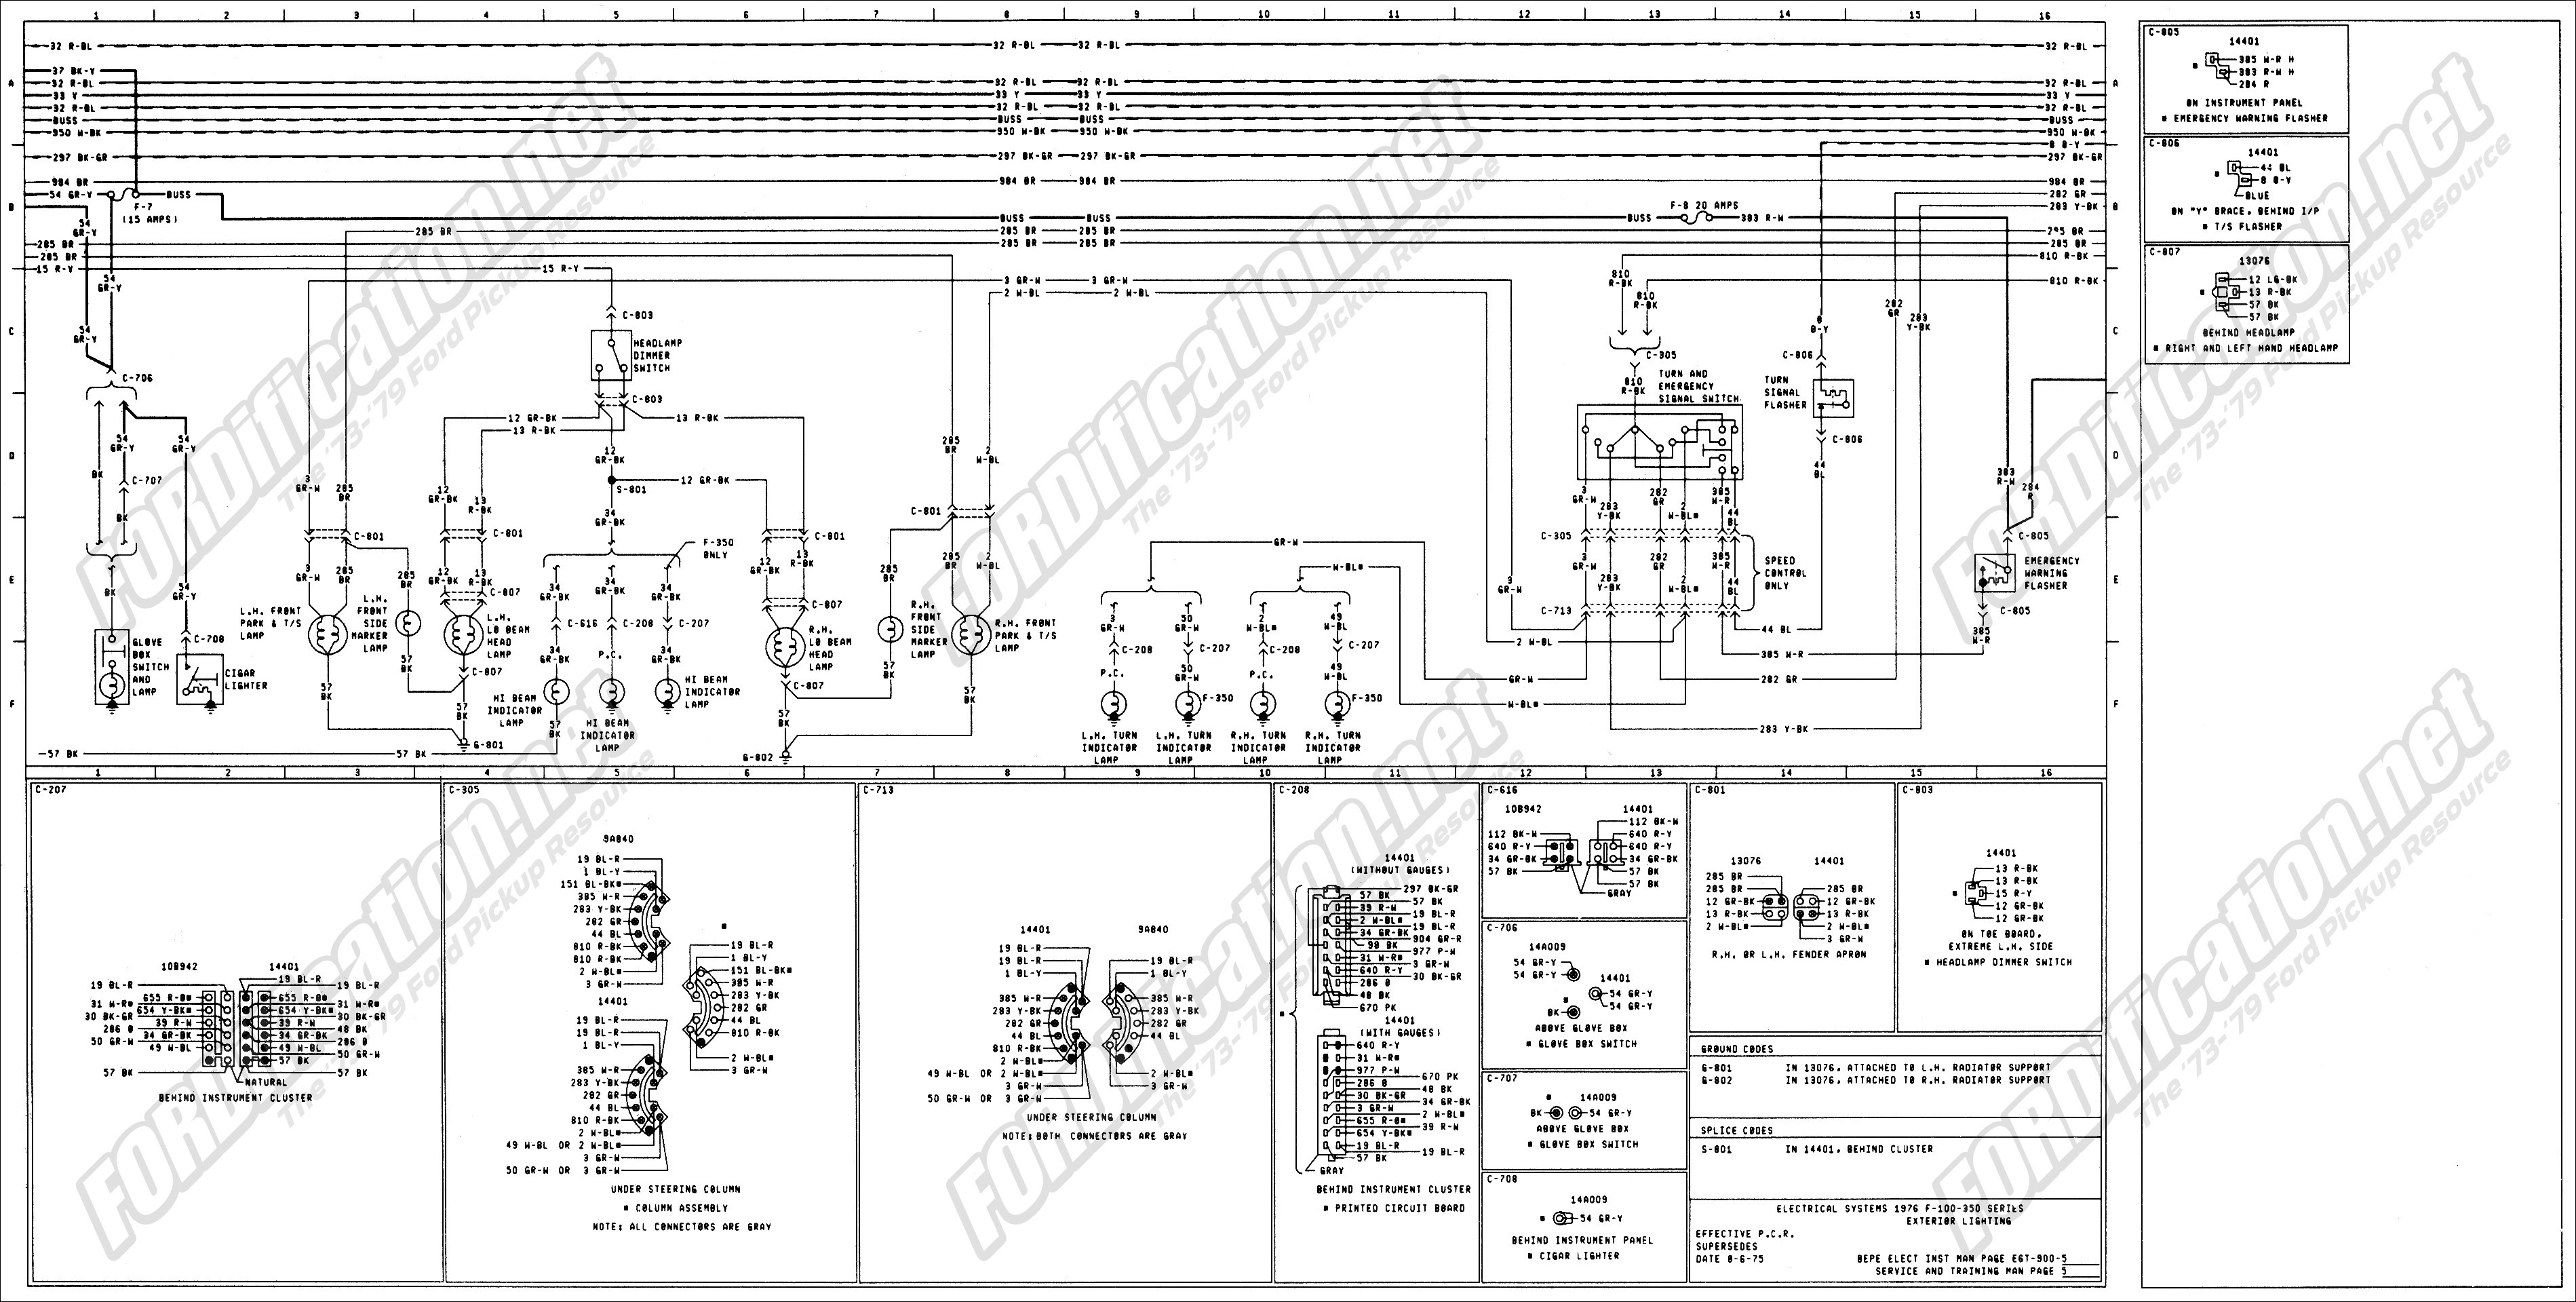 Automotive Wiring Diagram Saab 93 Wiring Diagram Seat Heat Saab